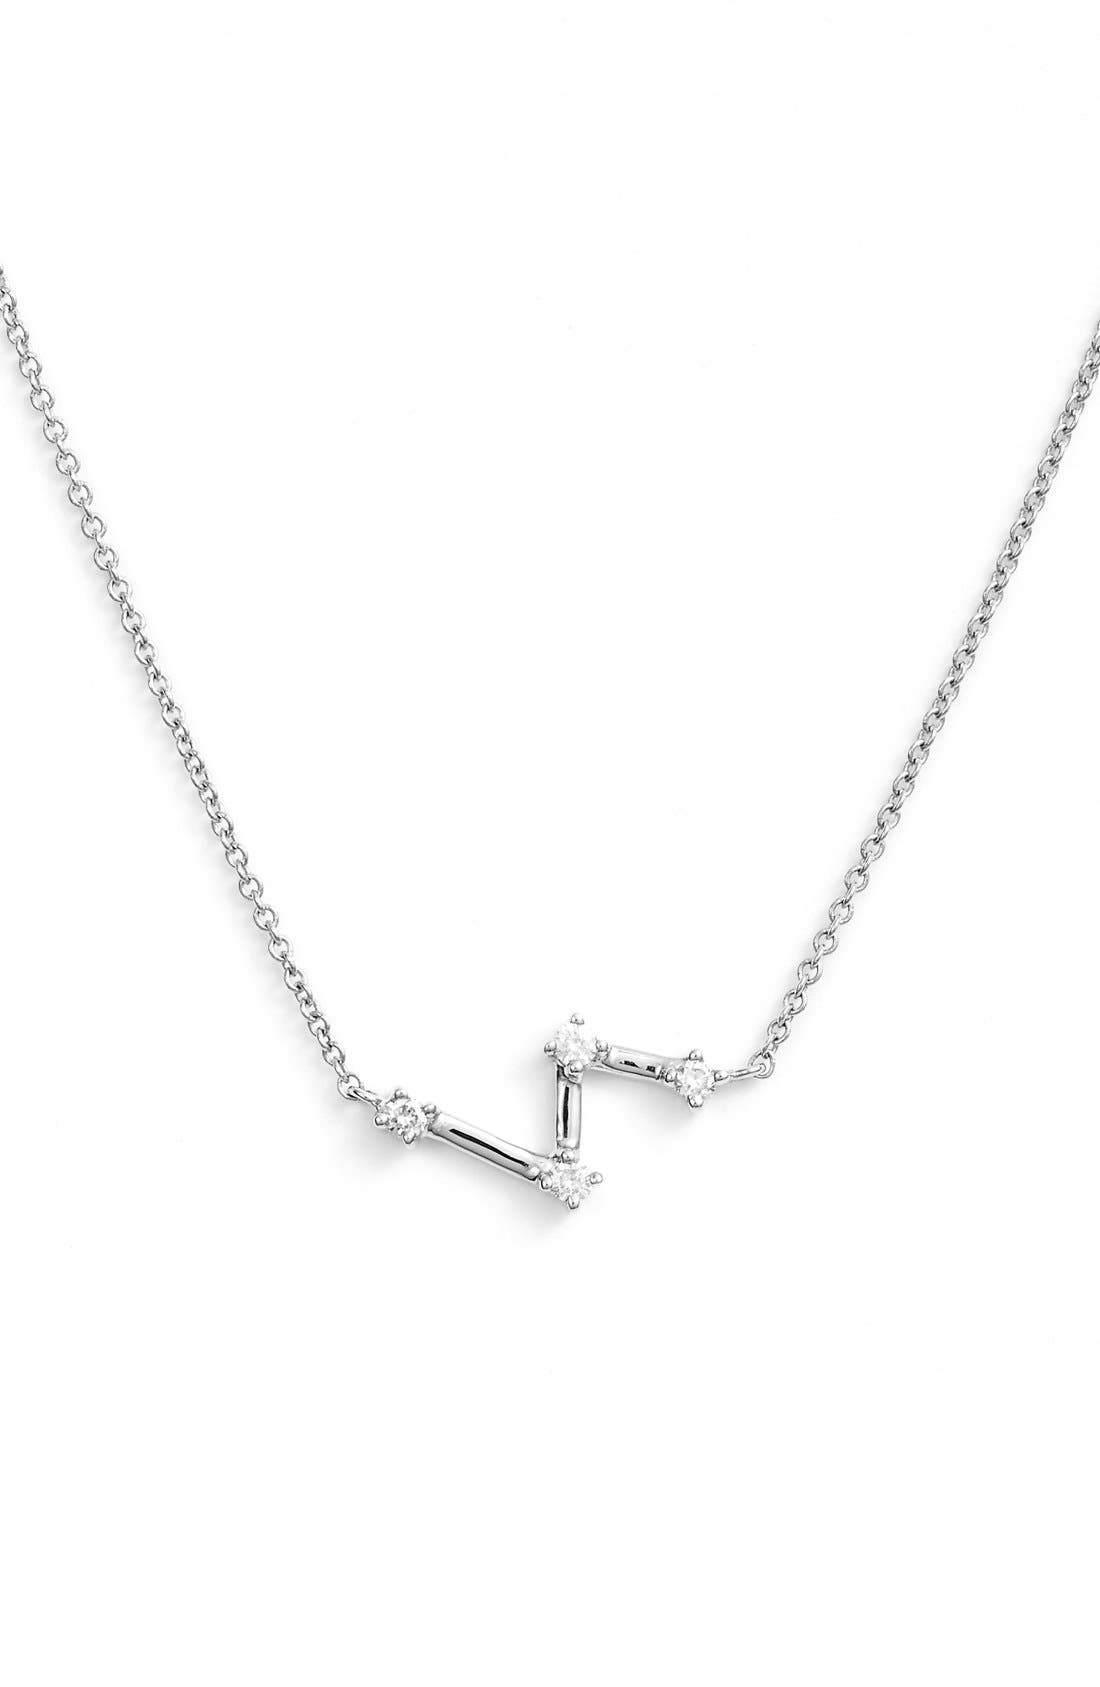 DANA REBECCA DESIGNS Jemma Morgan Zig Zag Diamond Pendant Necklace